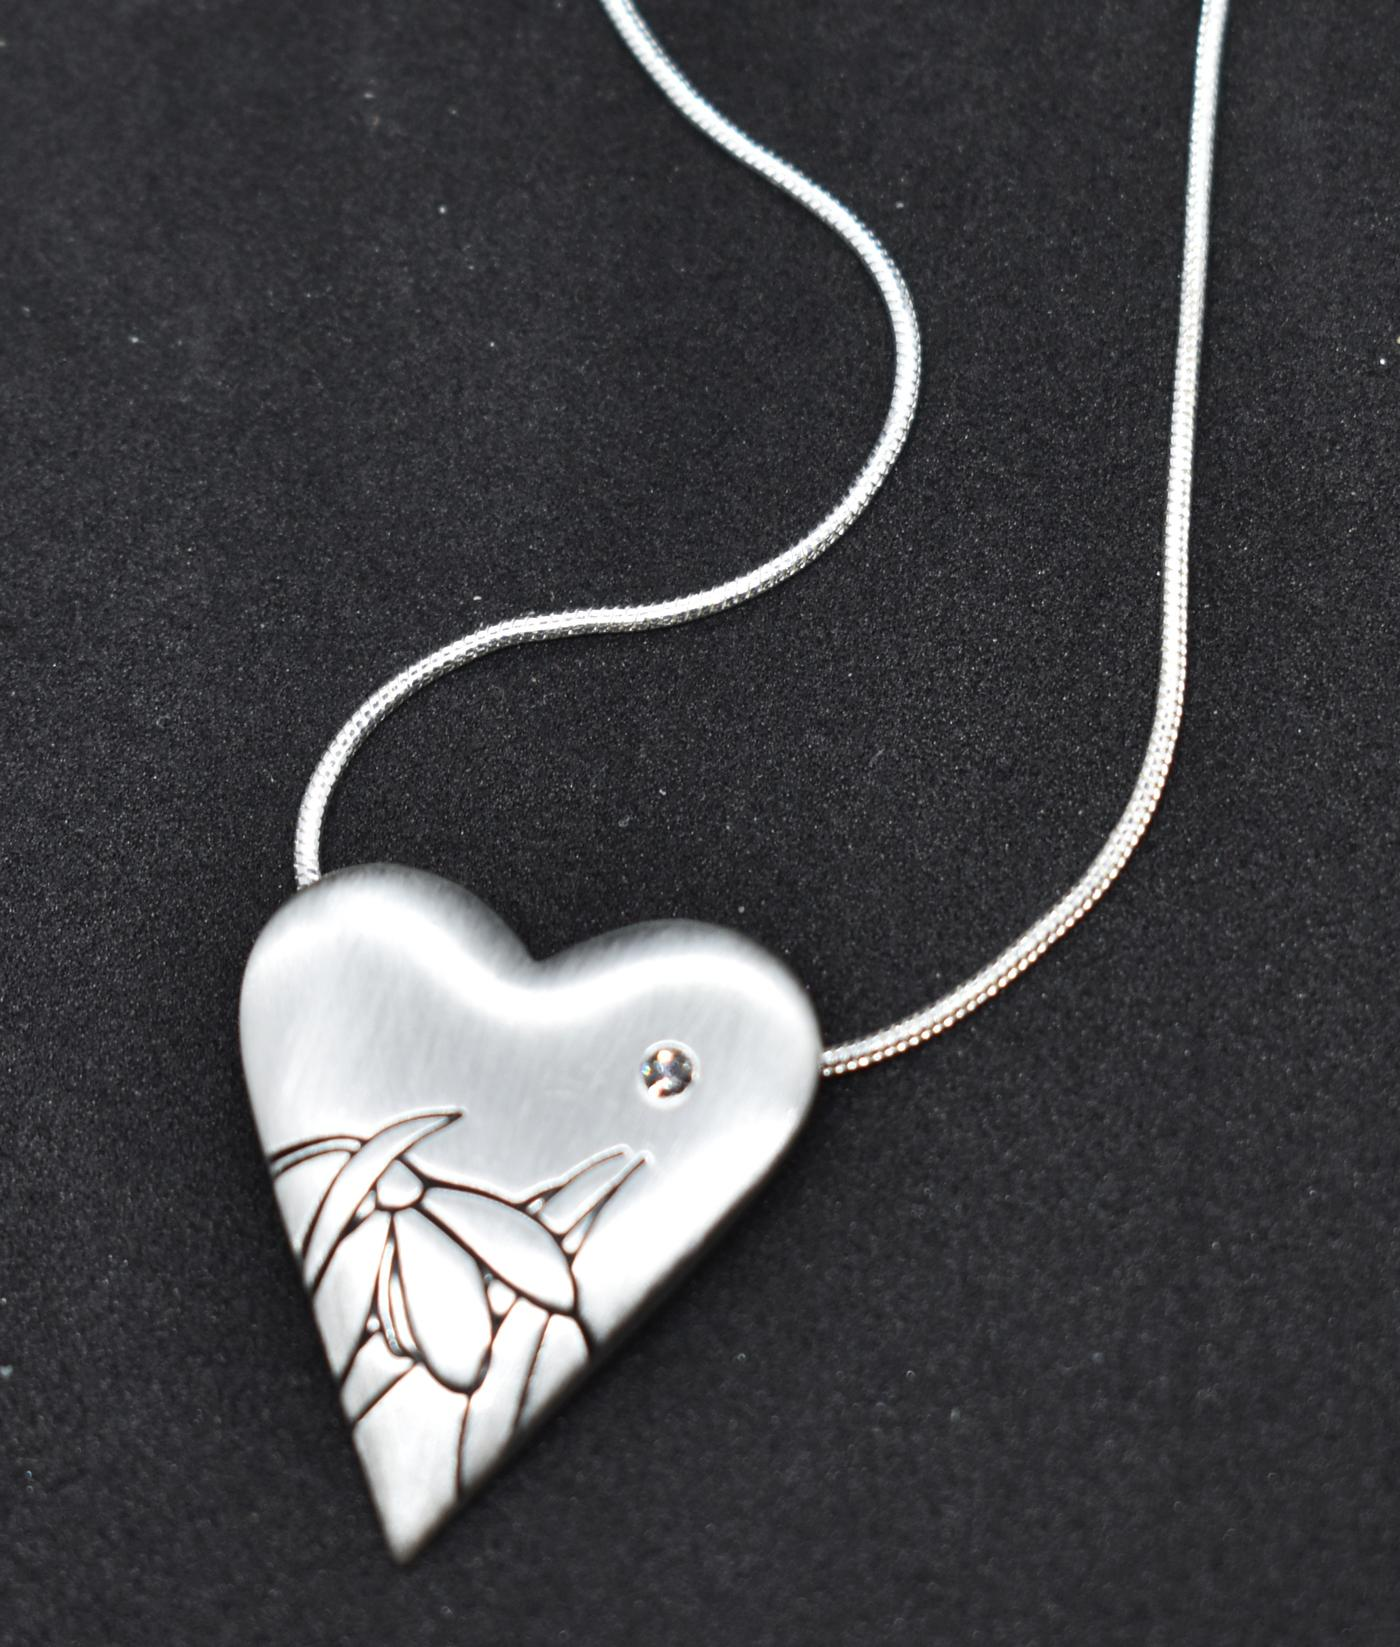 Fashion Necklace: Silver Necklace with a single cubic zirconia encrusted heart